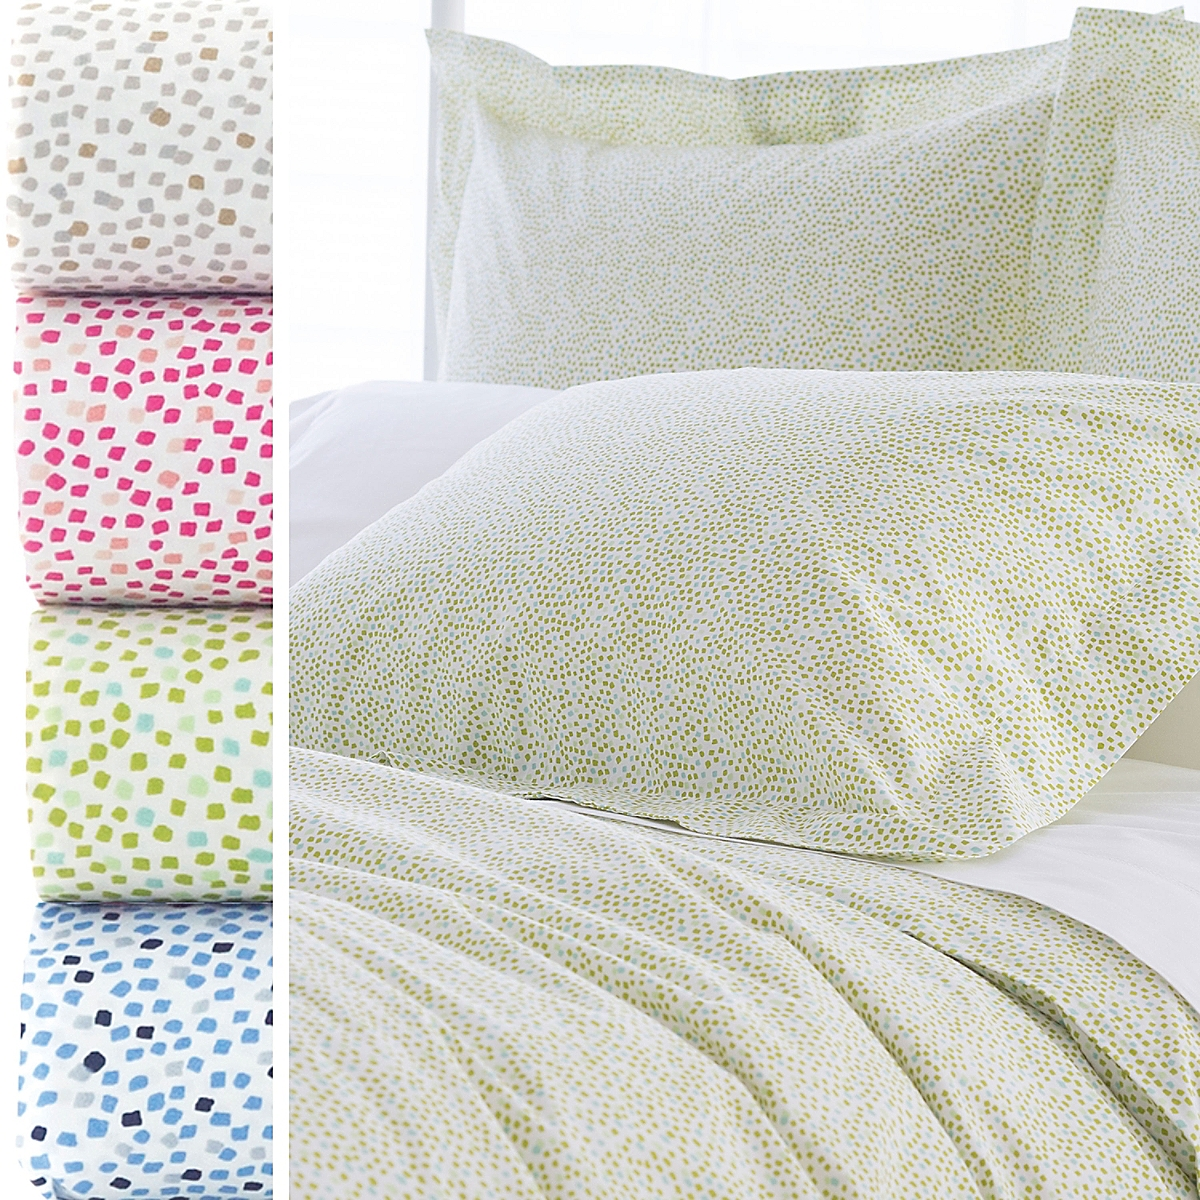 Confetti Duvet Cover and Sham